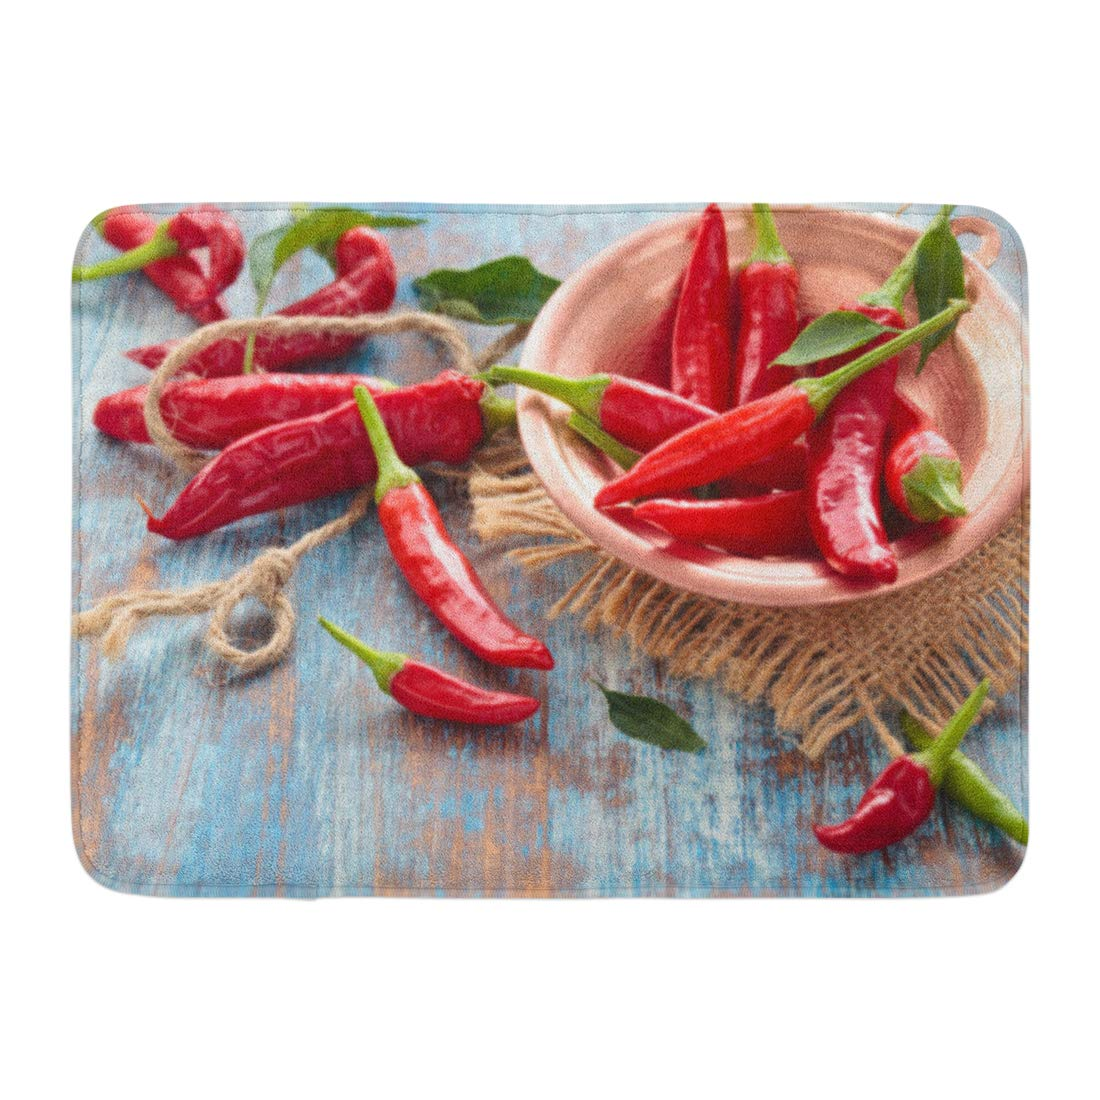 GODPOK Hot Red Table Chili Peppers in Copper Plate Wooden Rustic Rug Doormat Bath Mat 23.6x15.7 inch